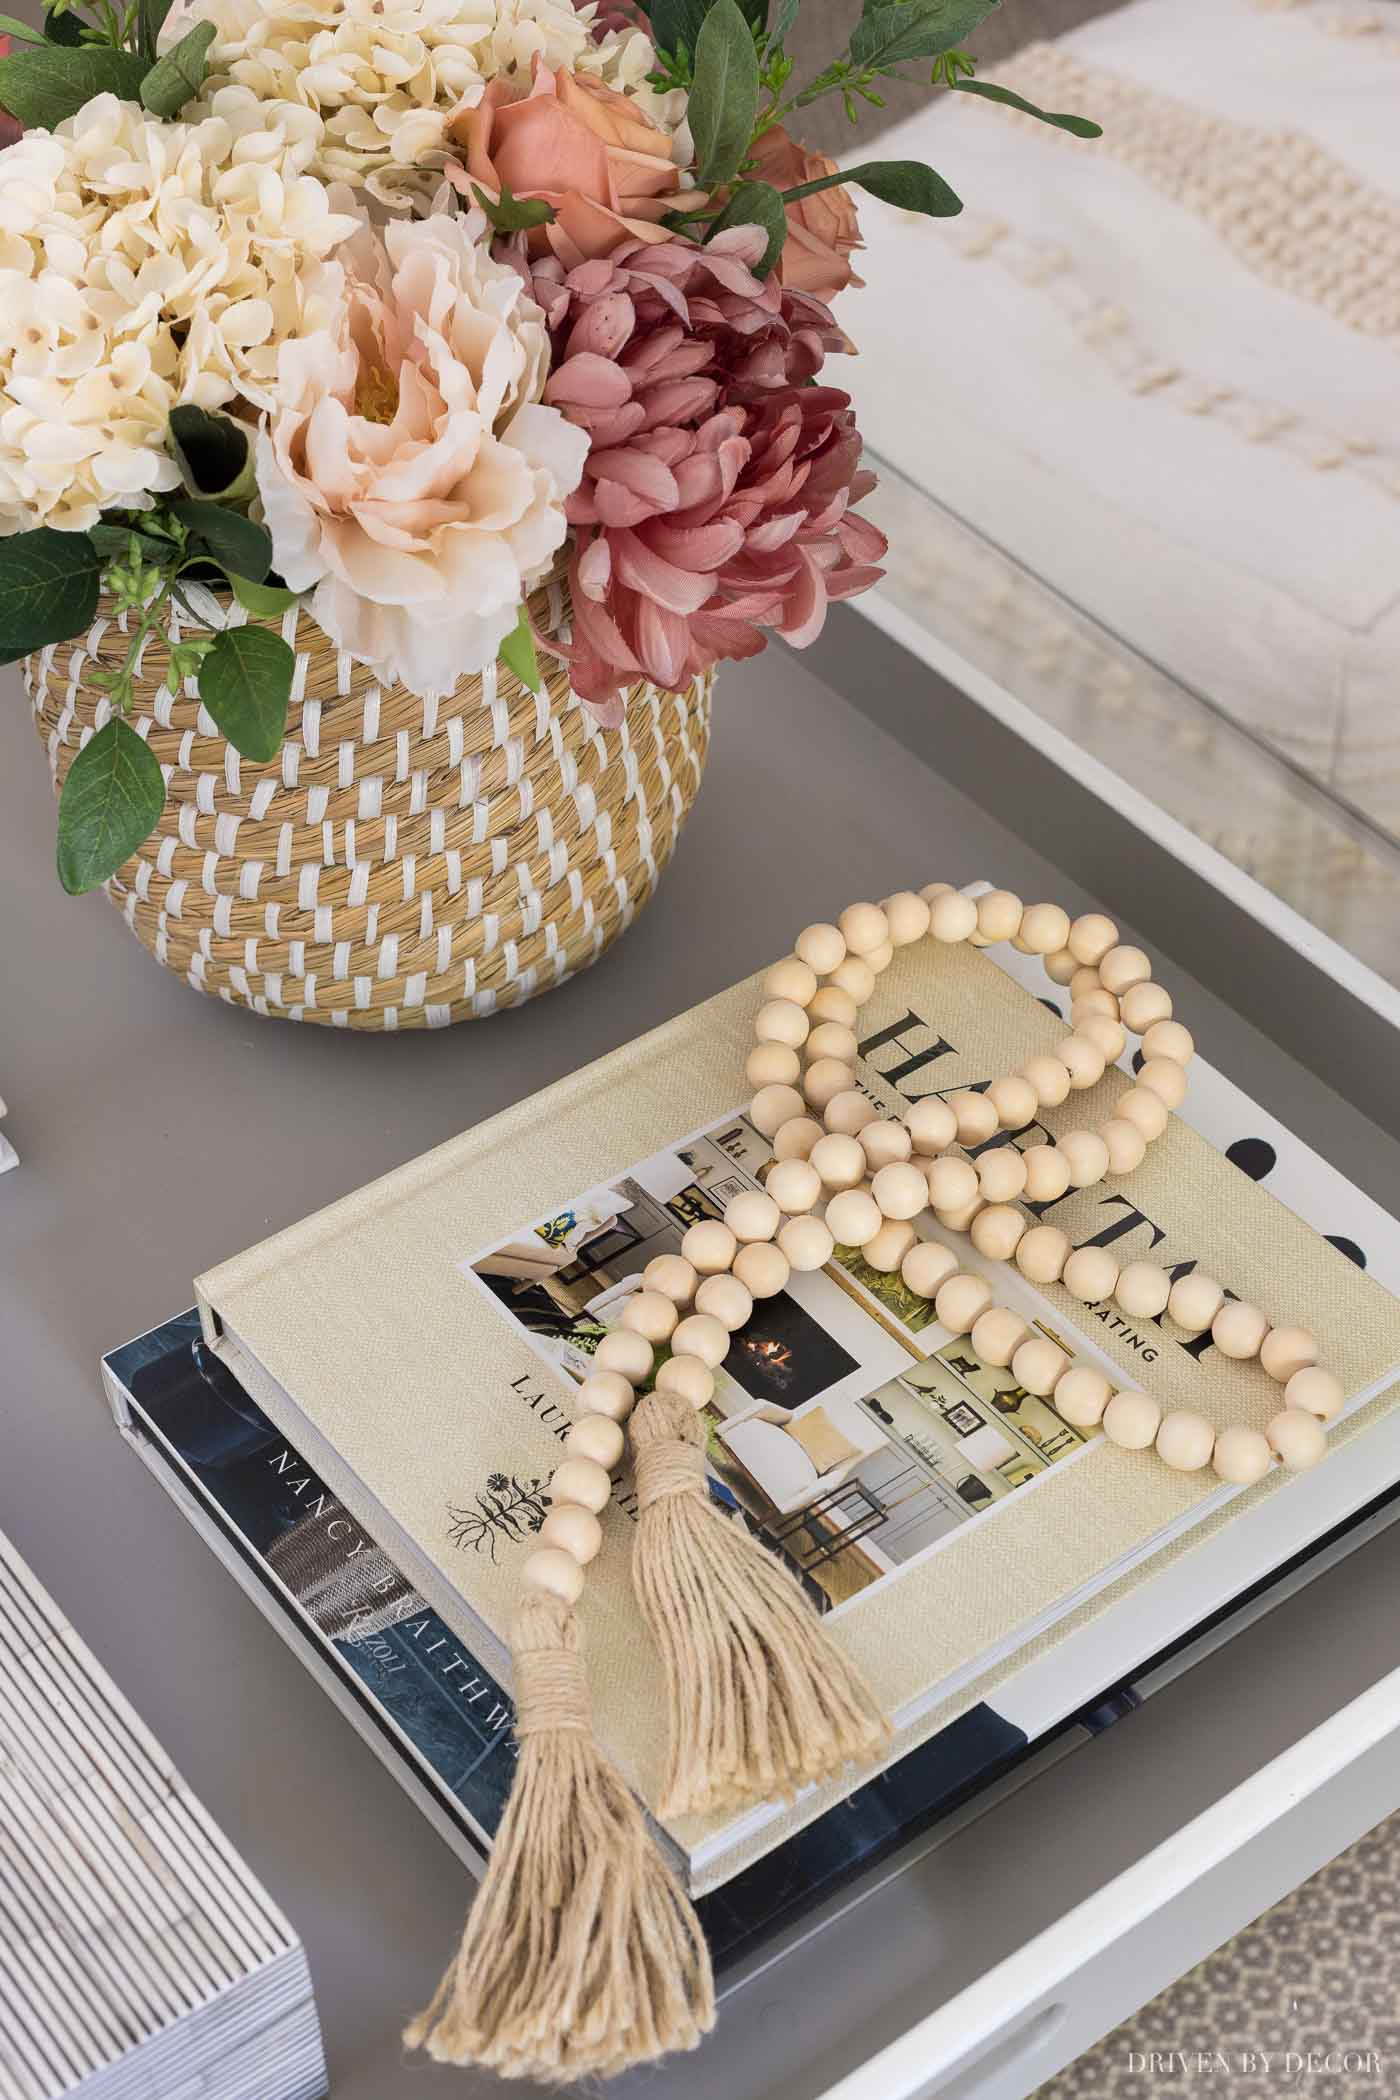 Strand of wood beads with tassels as the perfect fall decor for your coffee table!